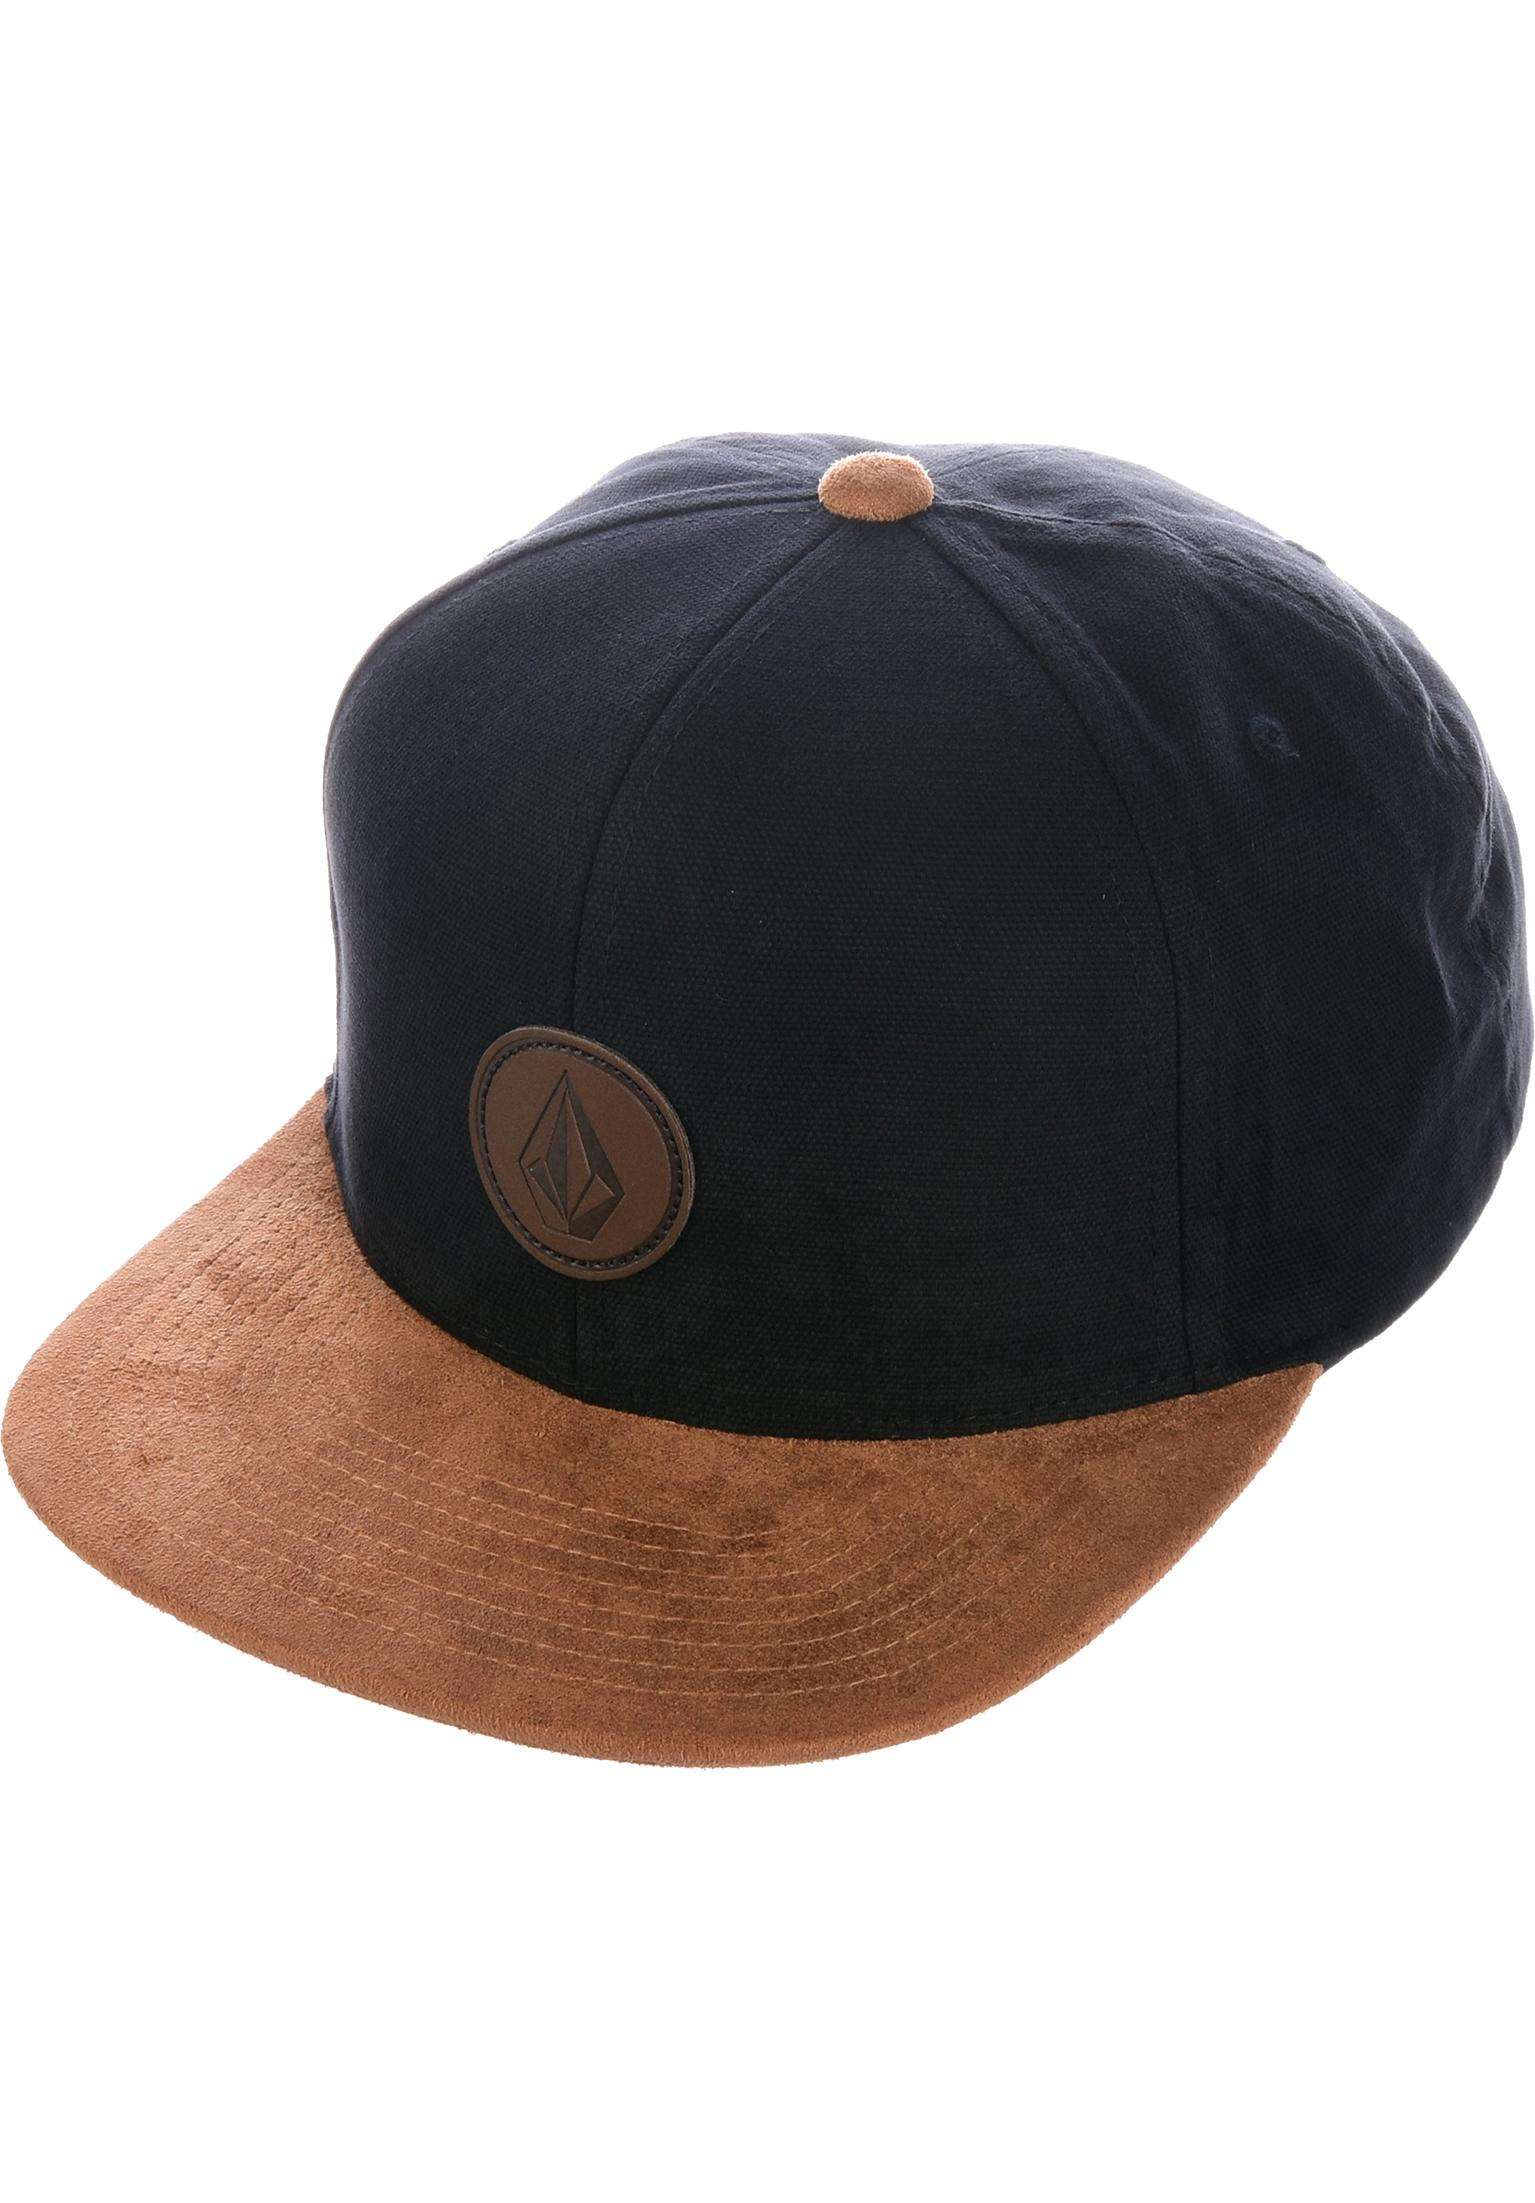 factory authentic d76b2 fd0bf ... discount quarter fabric volcom caps in vintageblack for men titus f21bb  9657e